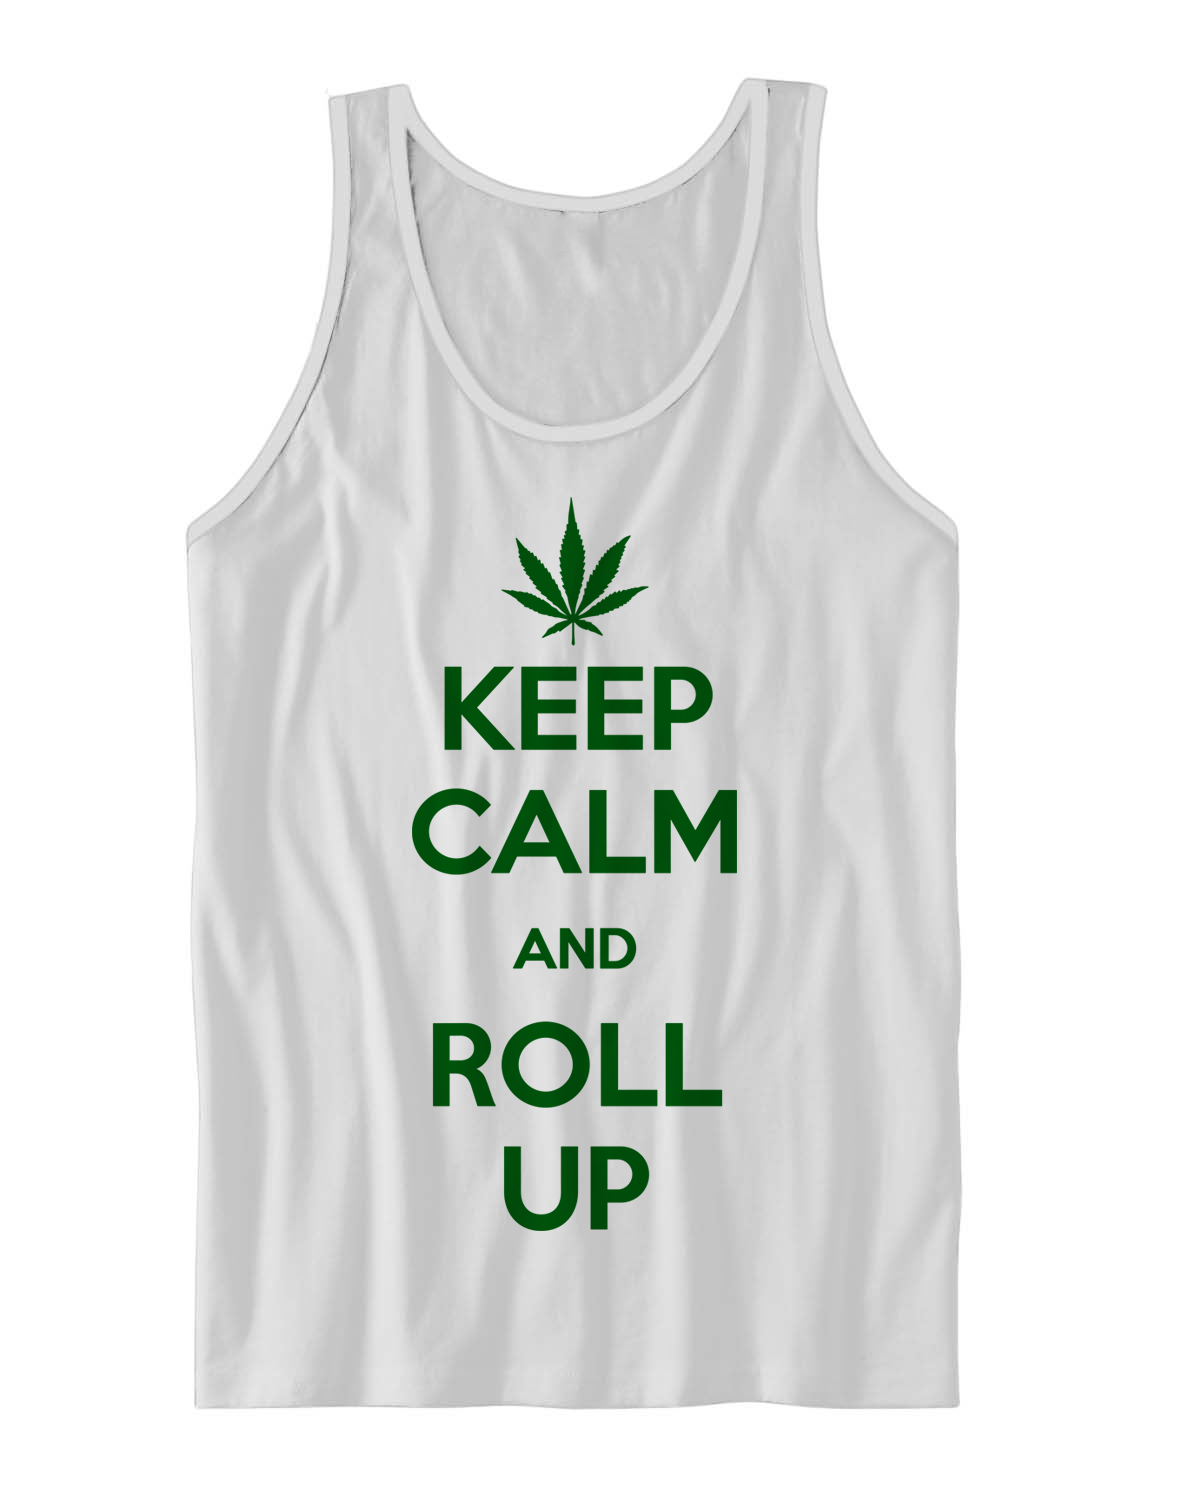 KEEP CALM & ROLL UP TANK TOP WEED SHIRTS FUNNY SHIRTS ...